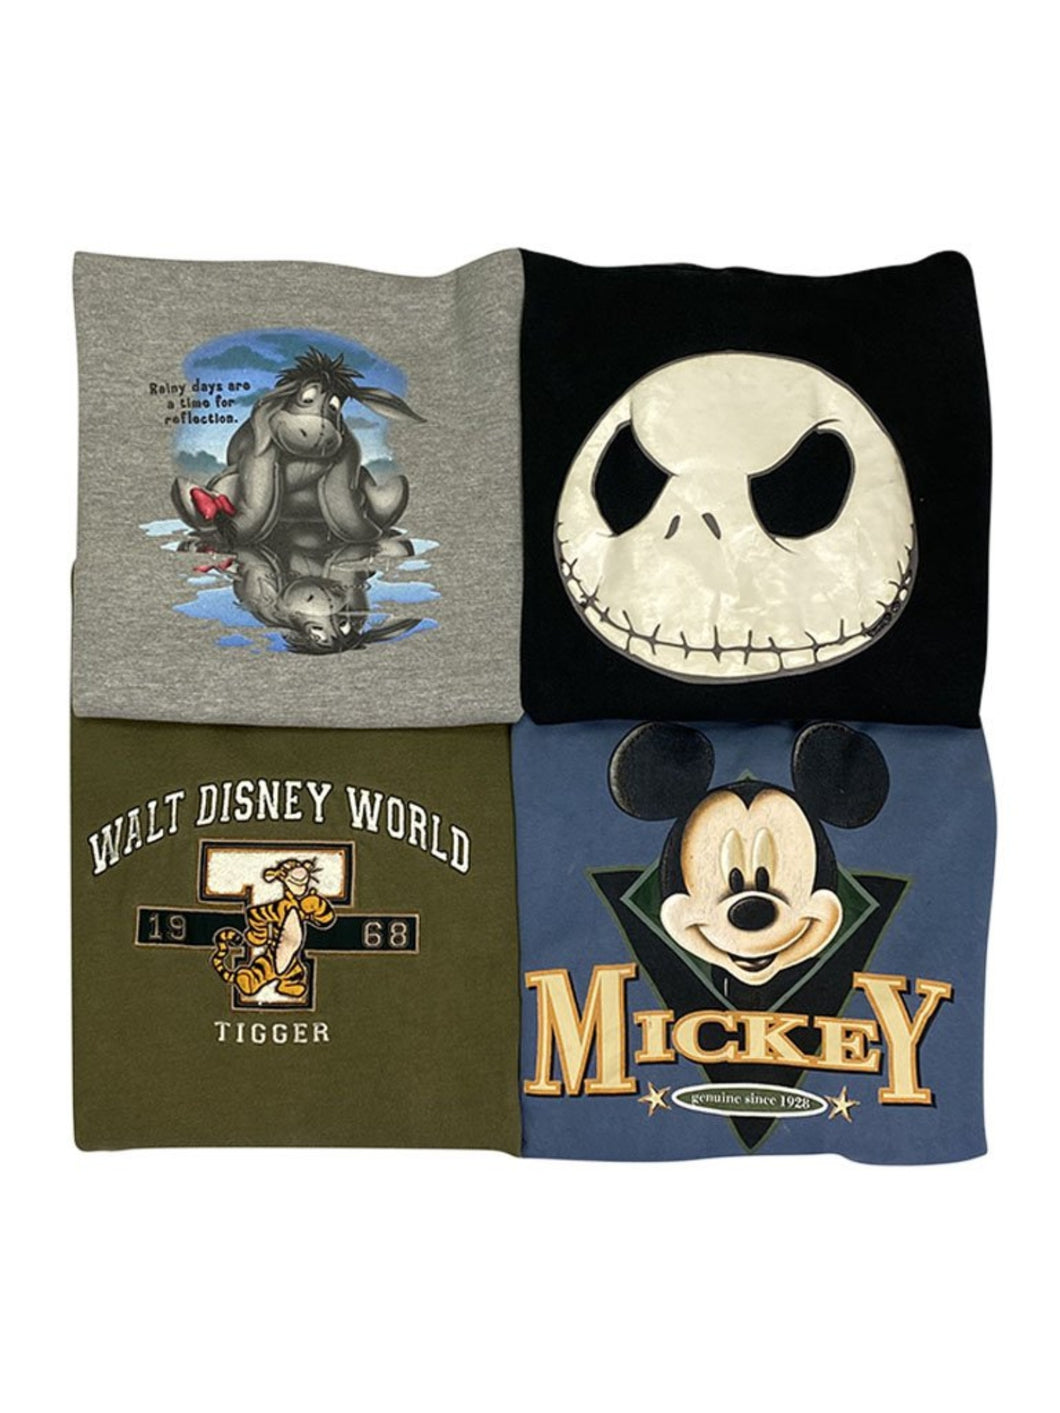 Vintage Cartoon Sweatshirt Bundle